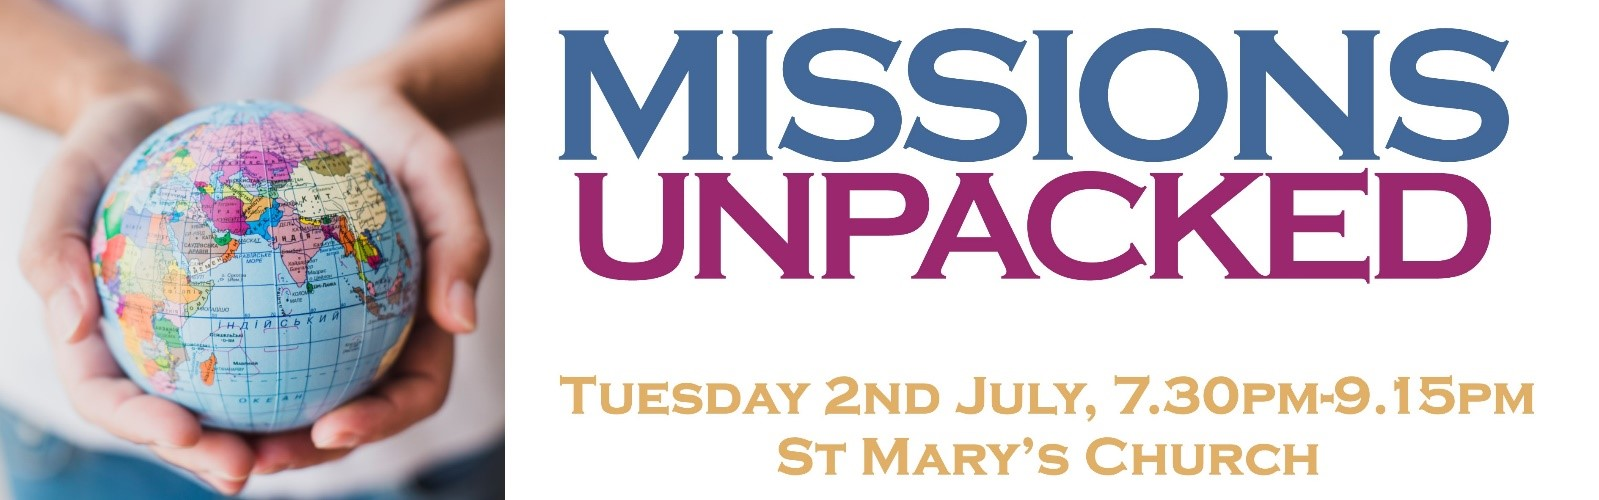 Missions unpacked